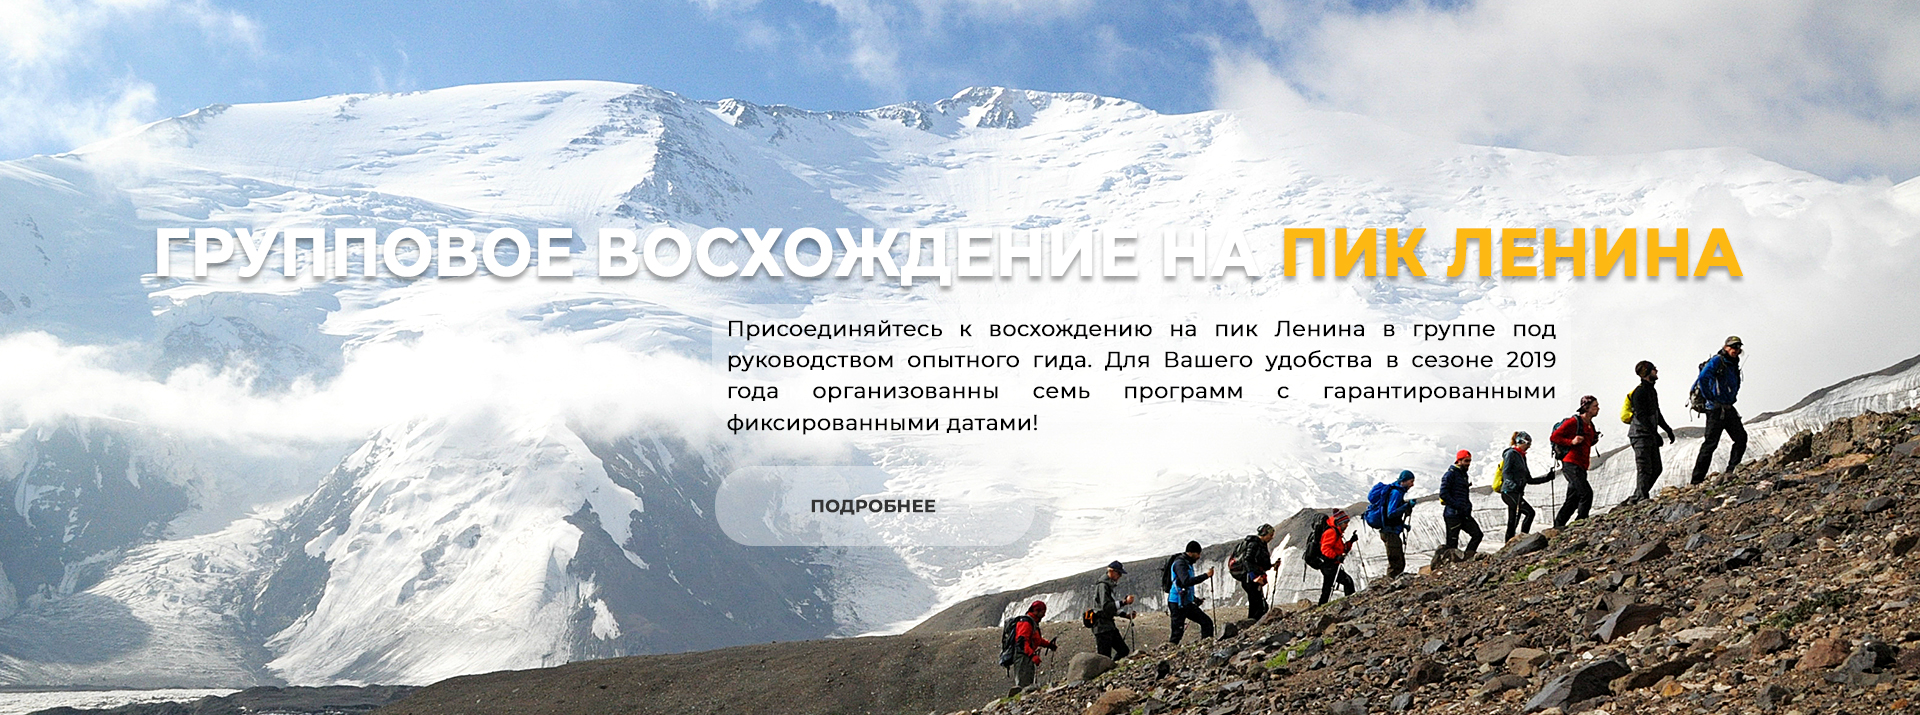 Lenin-Group-Expeditions